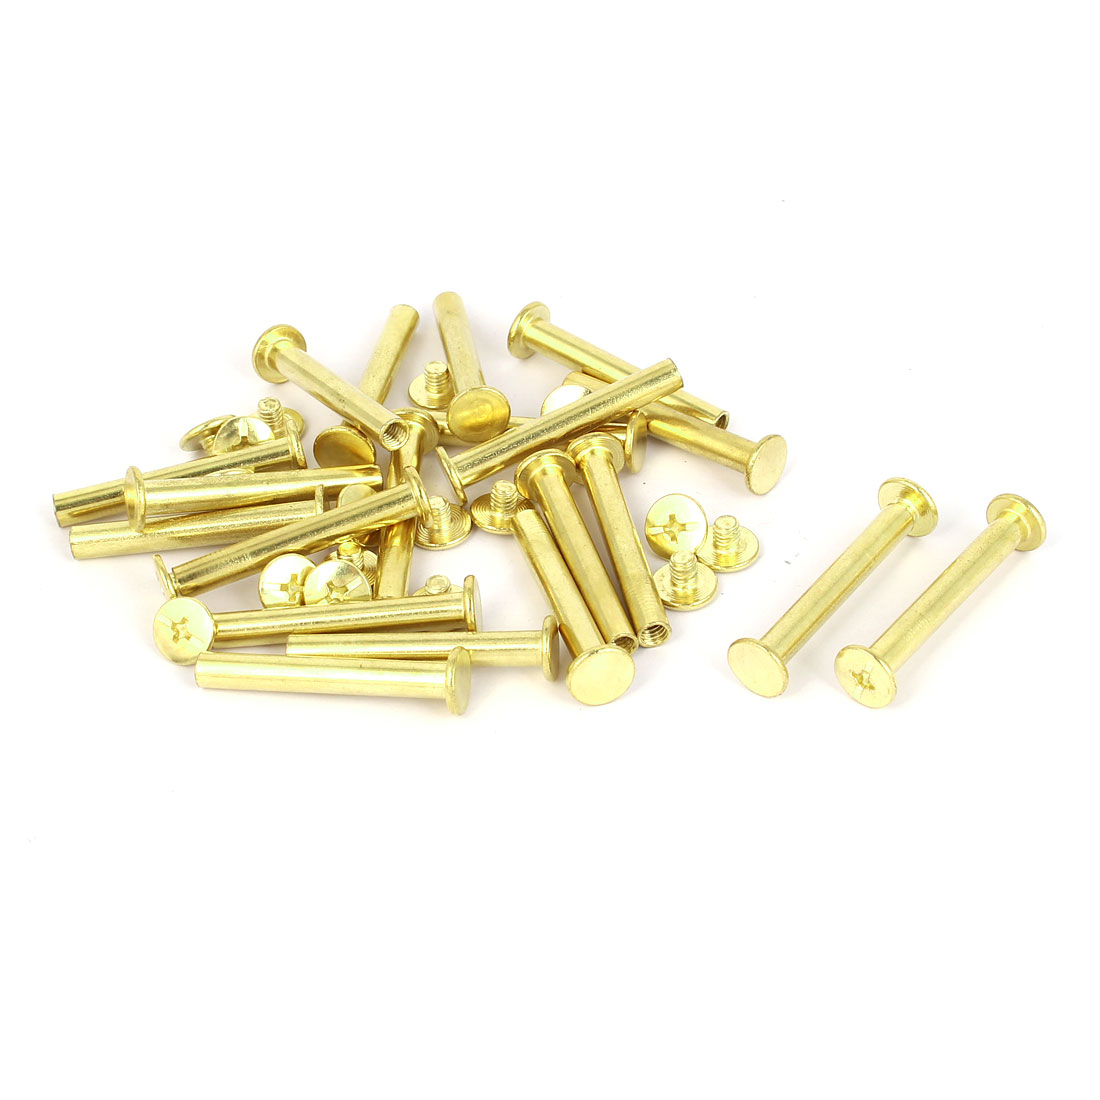 5mmx35mm Brass Plated Chicago Screws Binding Posts Docking Rivet 20pcs